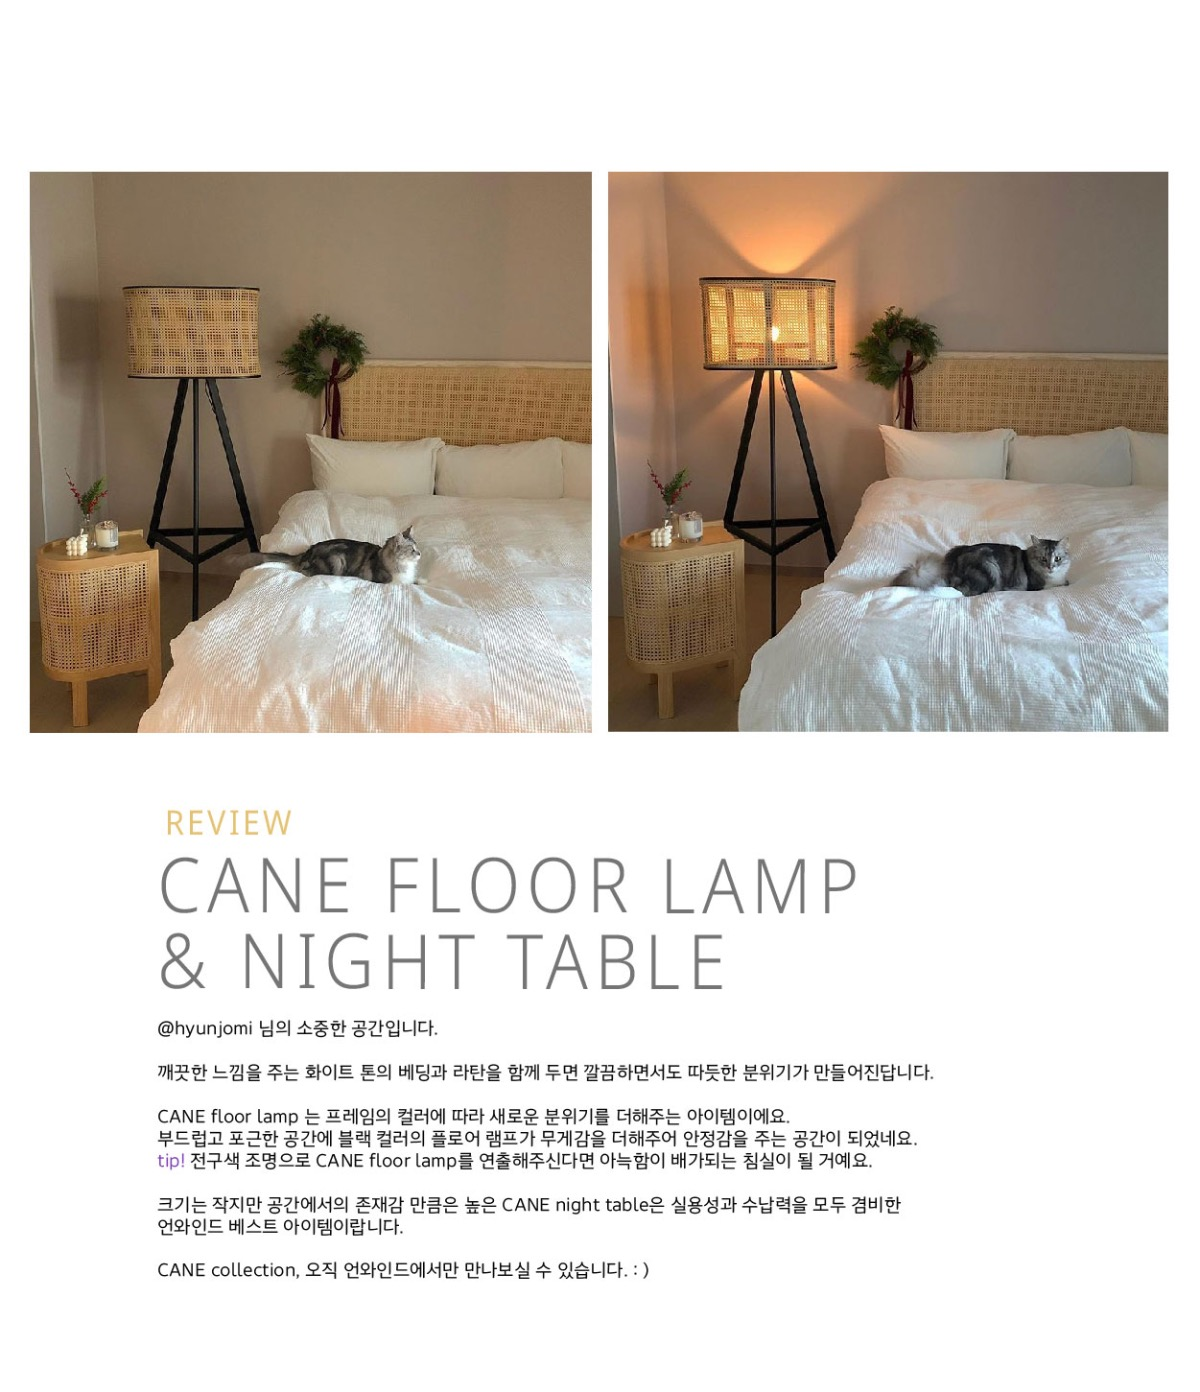 CANE floor lamp, night table